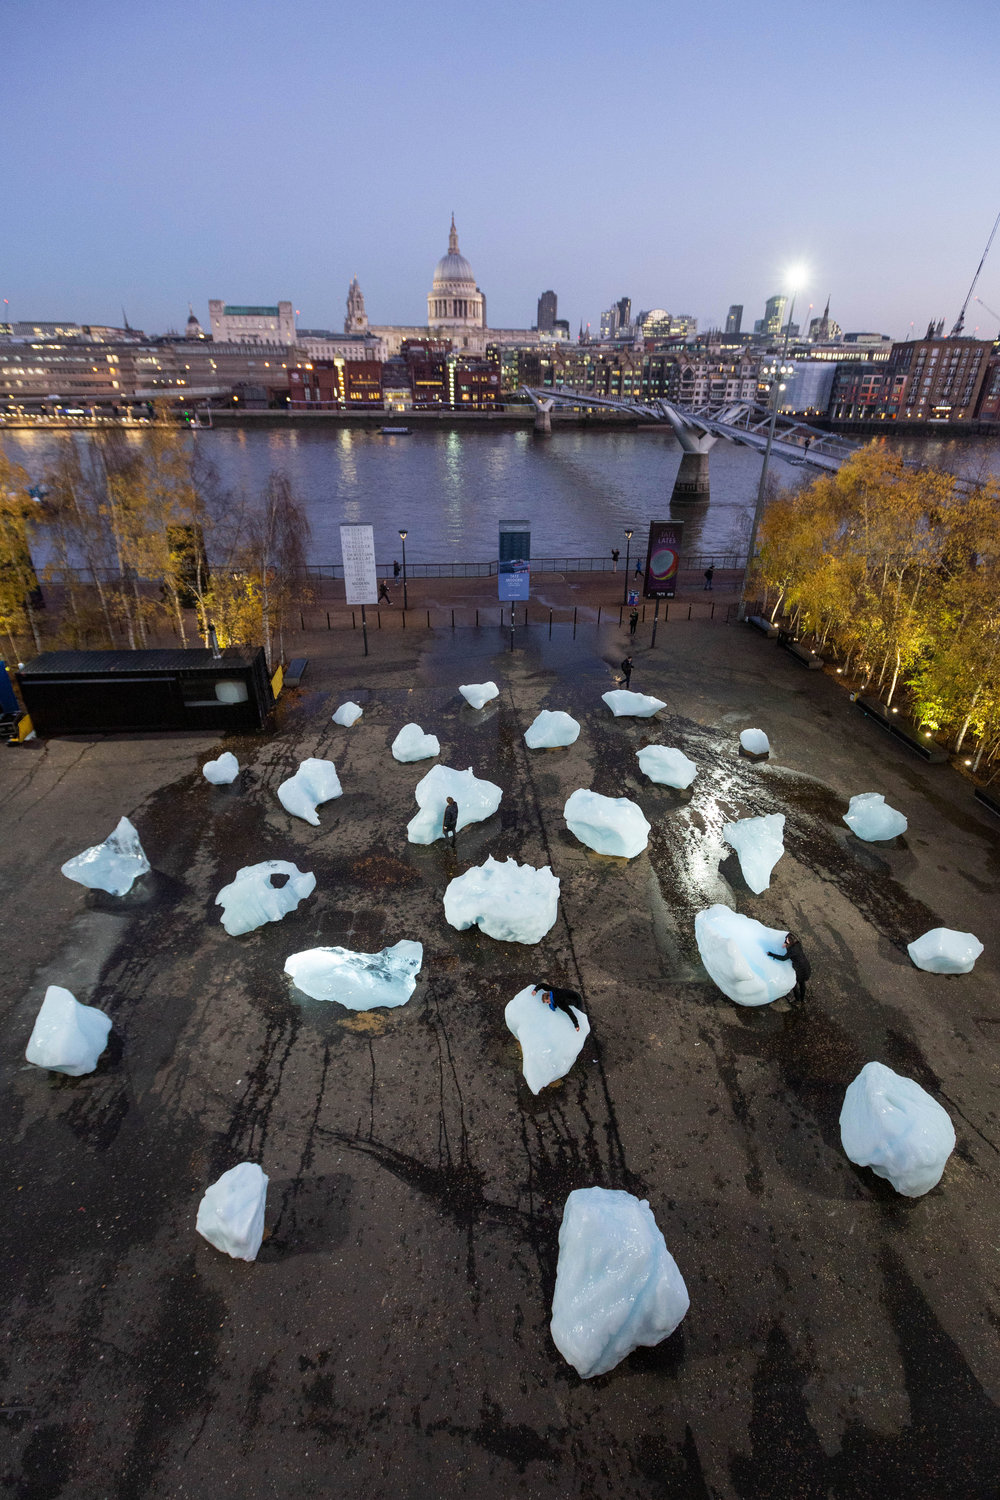 Ice Watch by Olafur Eliasson and Minik Rosing, Supported by Bloomberg Installation: Bankside, outside Tate Modern, 2018 / Photo: Justin Sutcliffe / © 2018 Olafur Eliasson